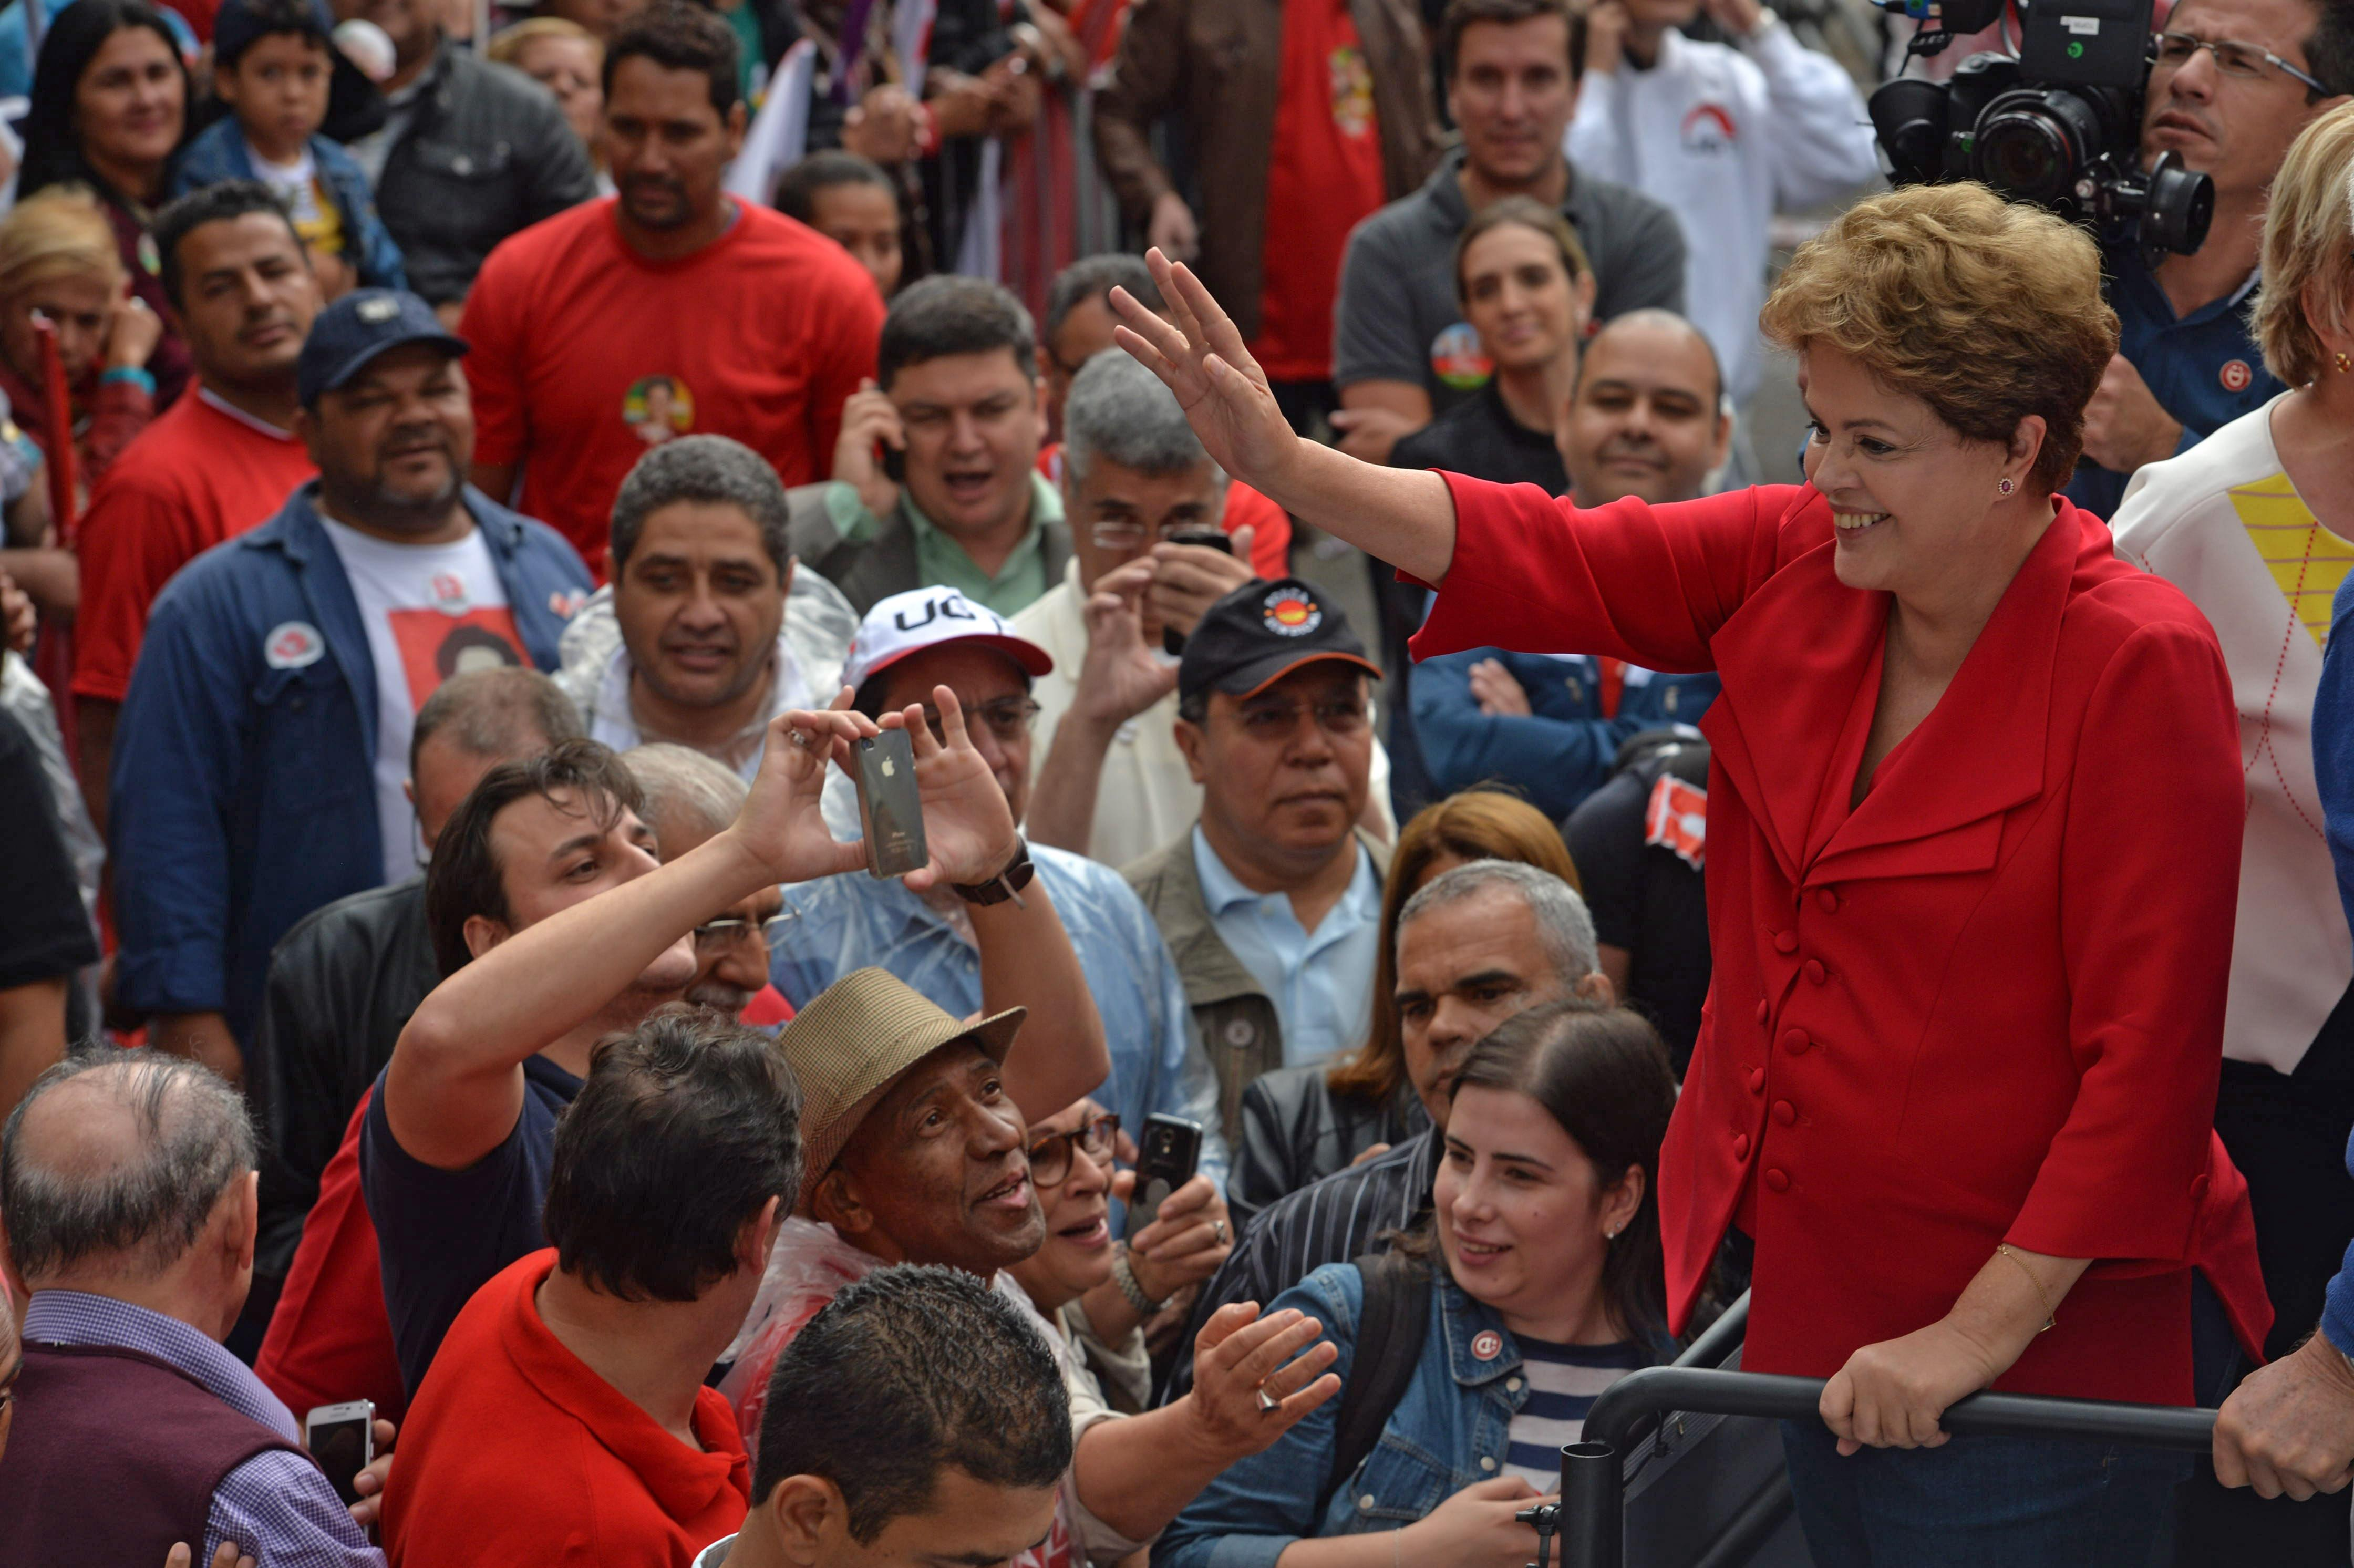 Brazilian President and presidential candidate Dilma Rousseff waves to supporters during a campaign rally in Sao Paulo, Brazil, on September 20, 2014 (AFP Photo/Nelson Almeida)